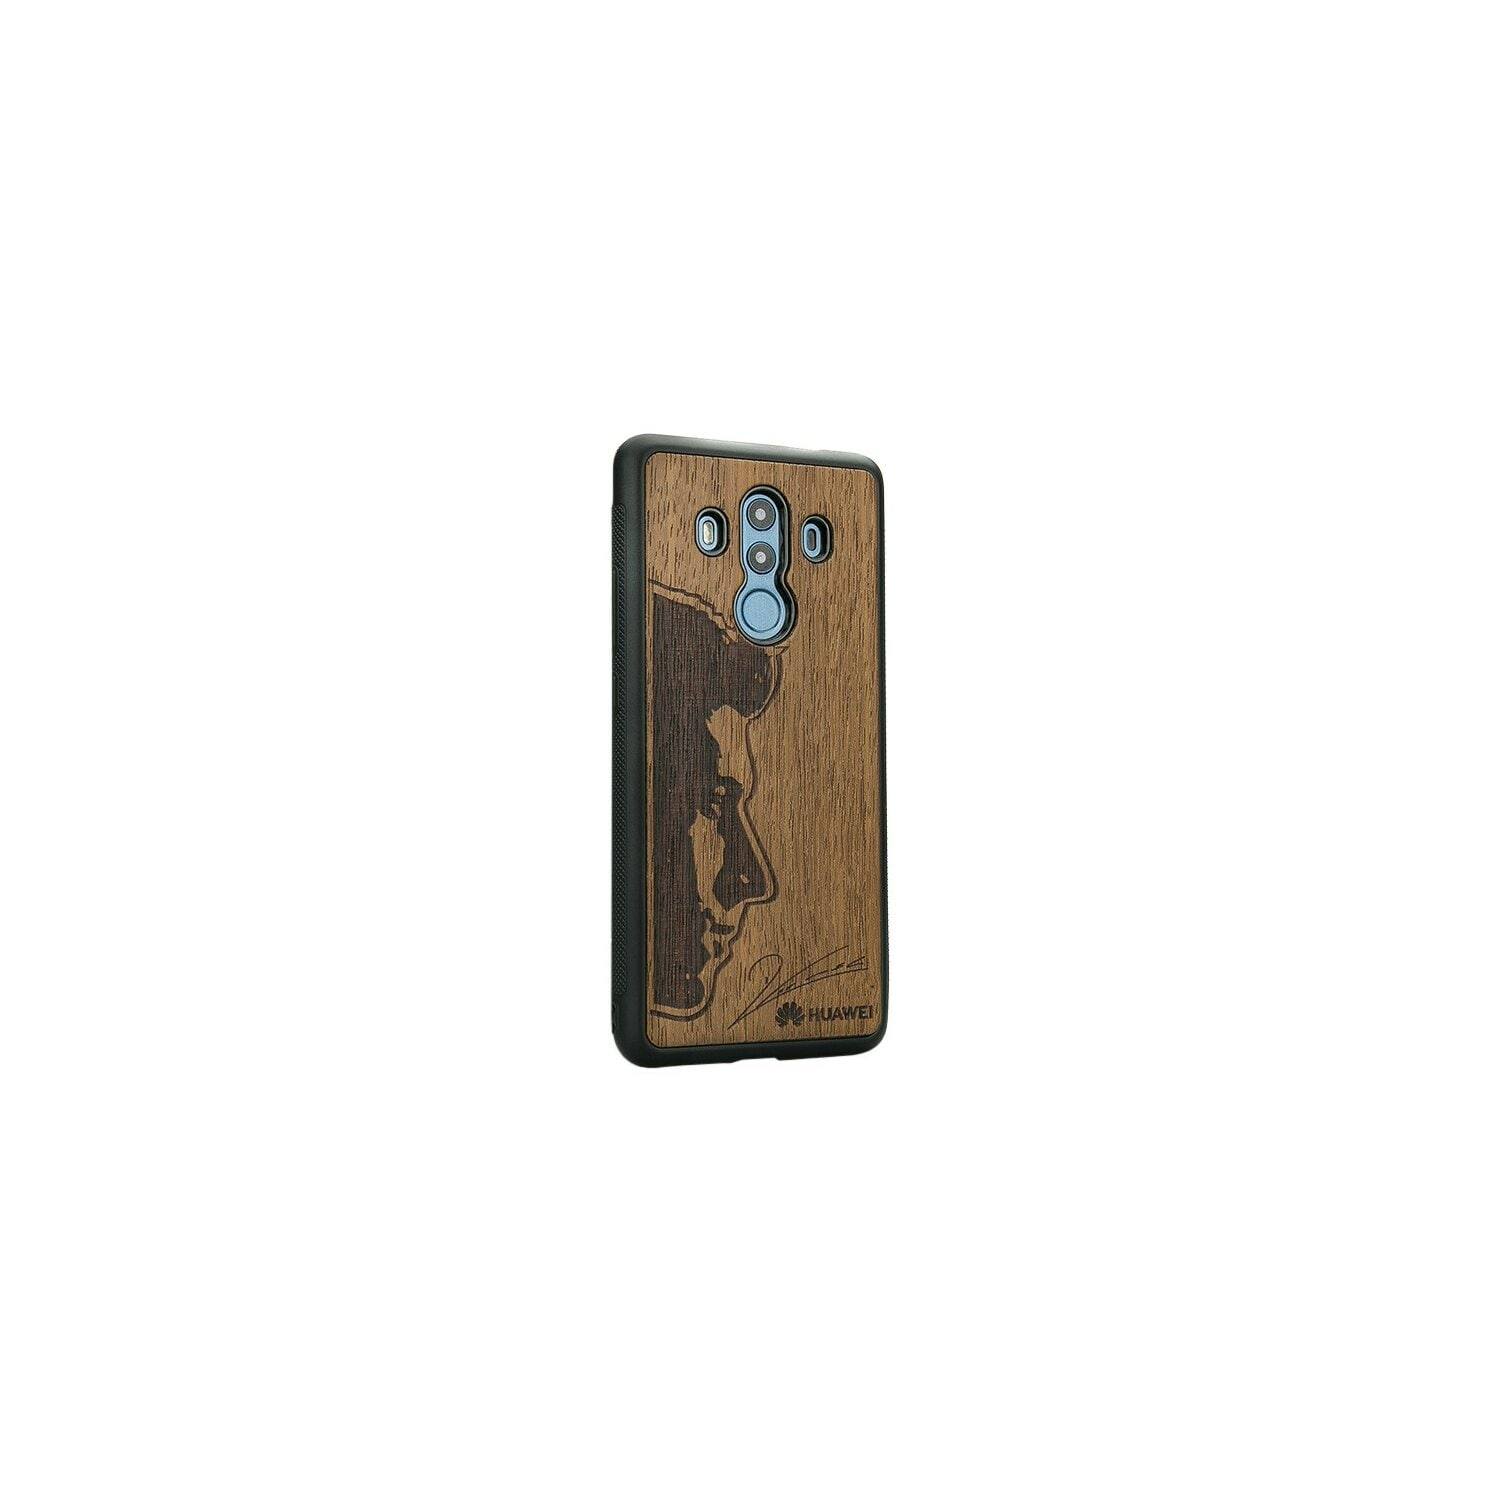 Etui BEWOOD Robert Lewandowski do Huawei Mate 10 Pro